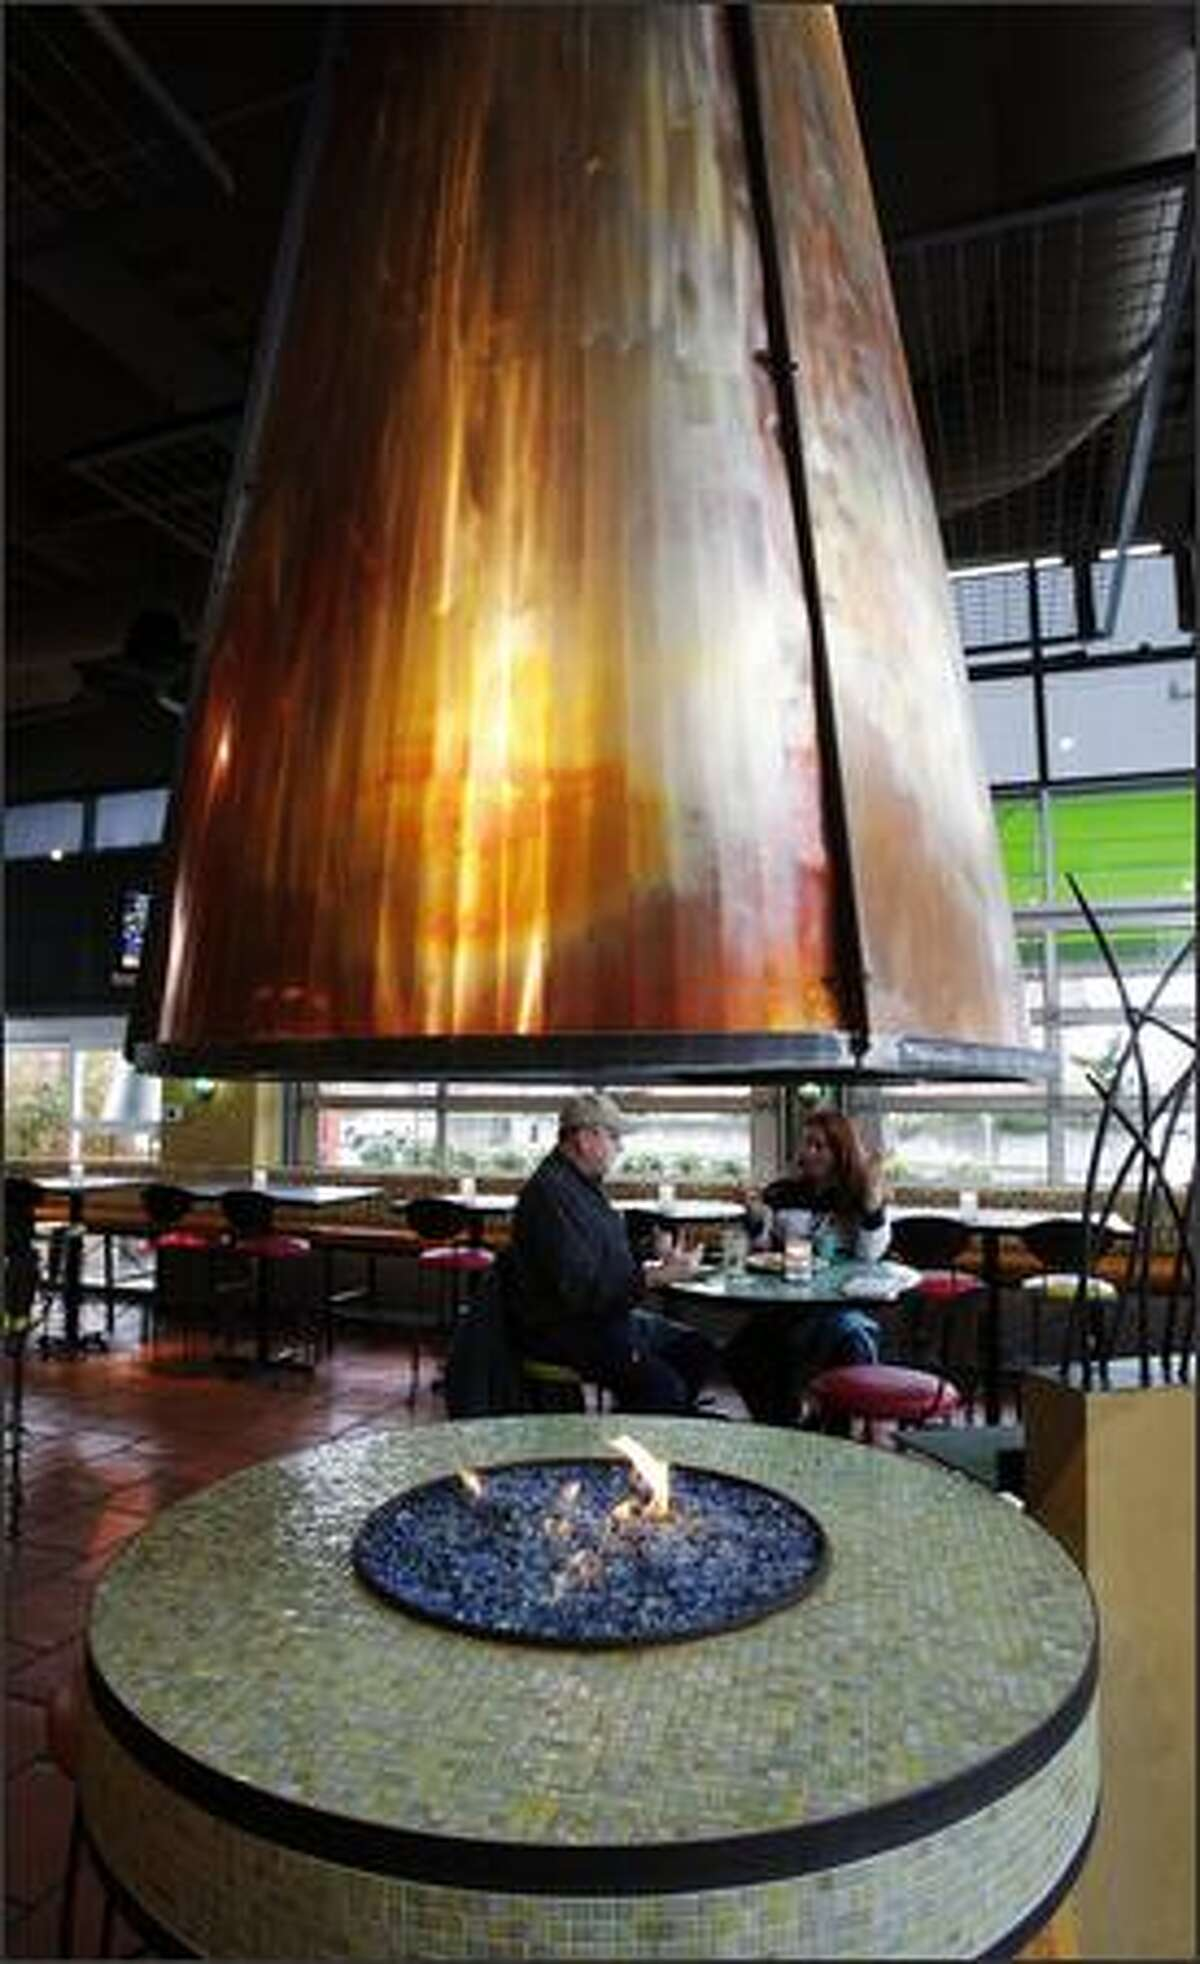 Charles O'Brien and Paula O'Neill enjoy their lunch near the fireplace at the Alki Cactus, the third in the Seattle area.